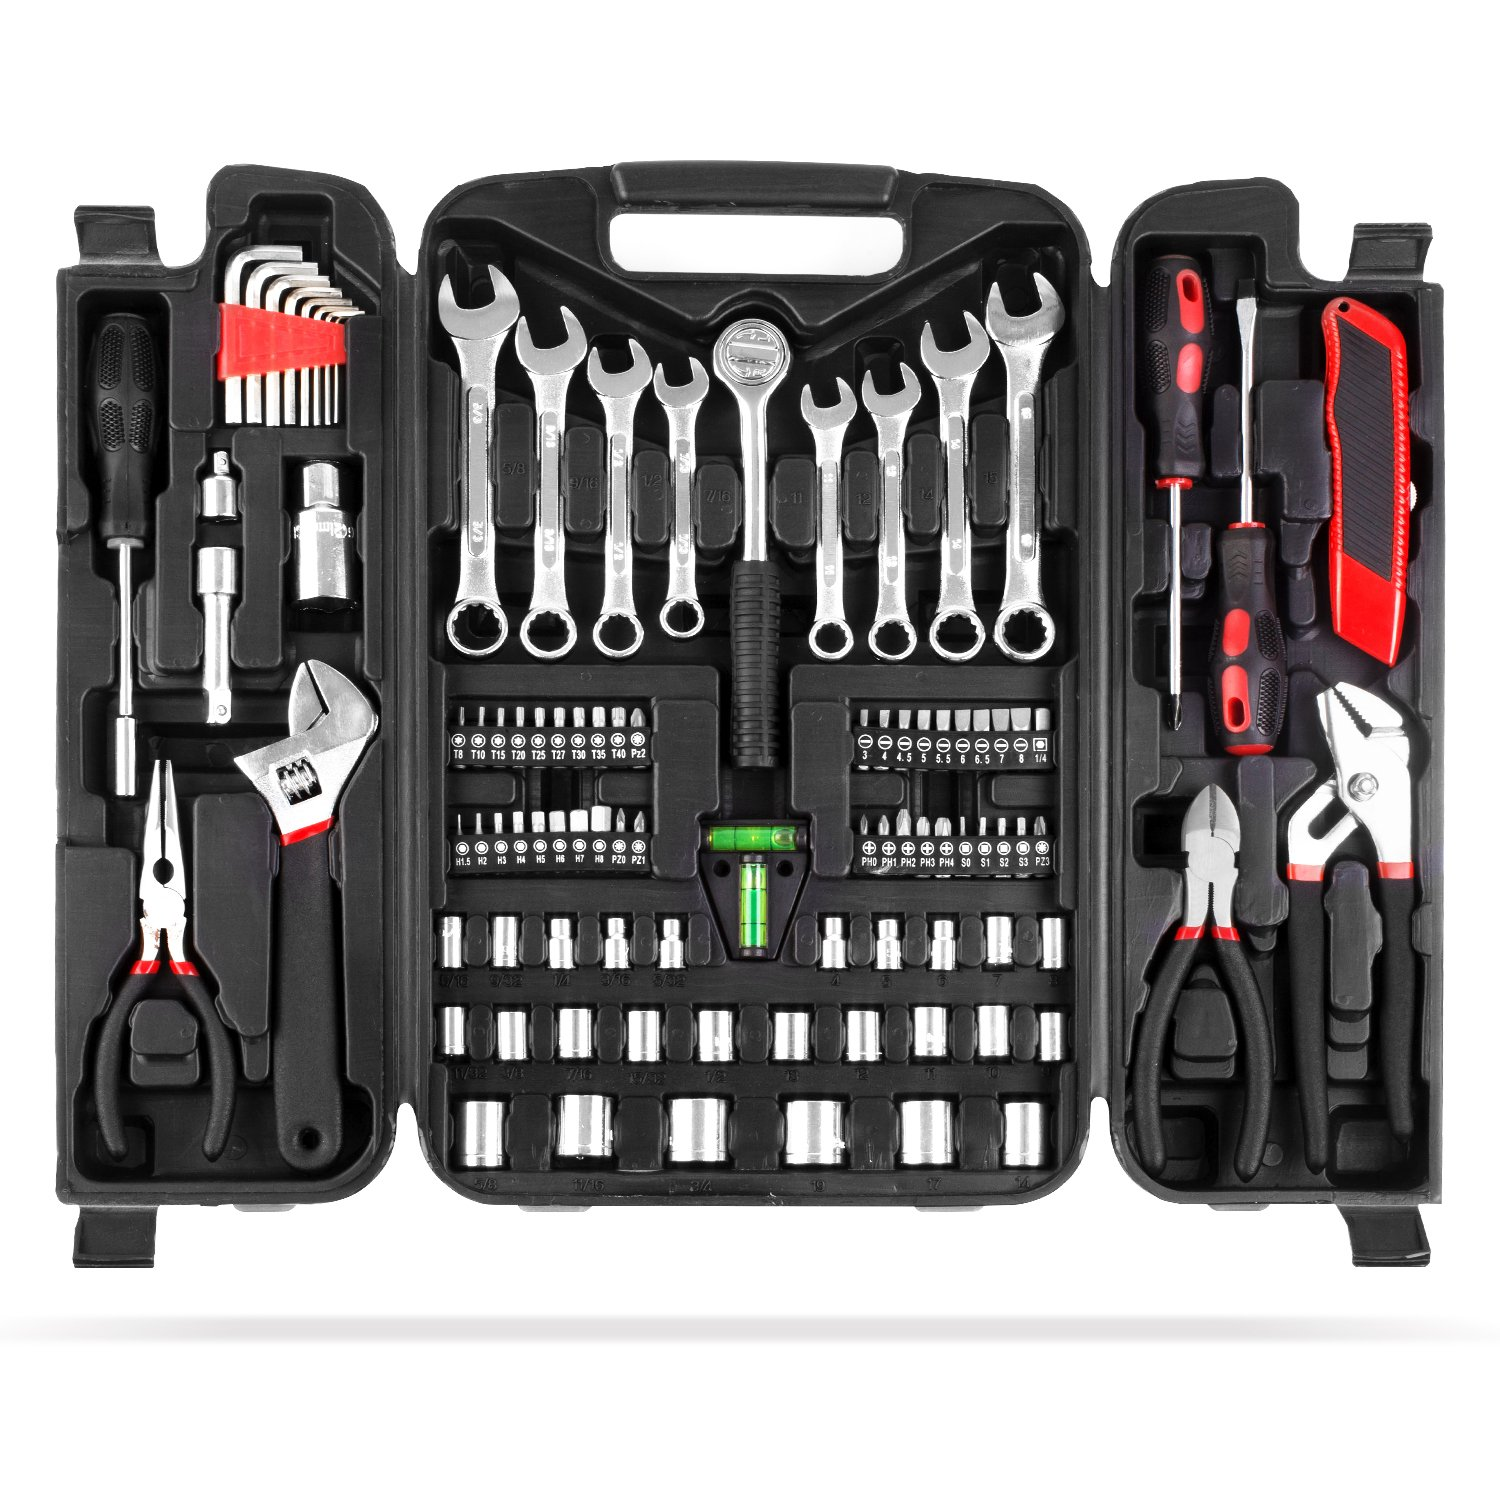 MVPOWER 95 Piece Home Mechanics Repair Tool Kit, General Household Tool Set with Durable and Long Lasting Tools Mixed Tool Set with Plastic Toolbox Storage Case Perfect for DIY, Home Maintenance by MVPower